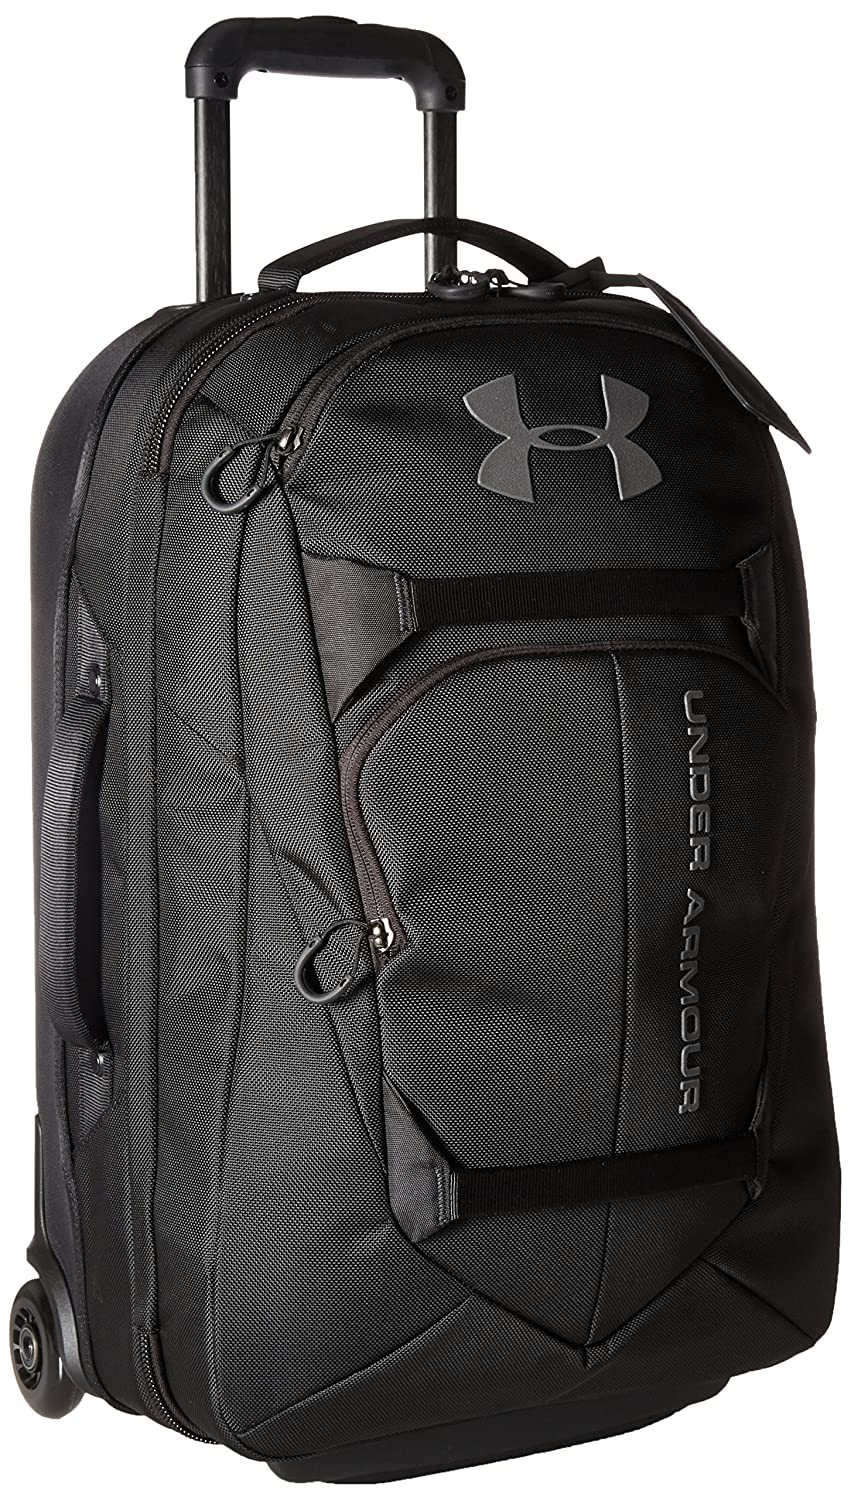 Under Armour Carry-On Rolling Travel Bag, Black (001)/Black, One Size Under Armour Bags 1287681